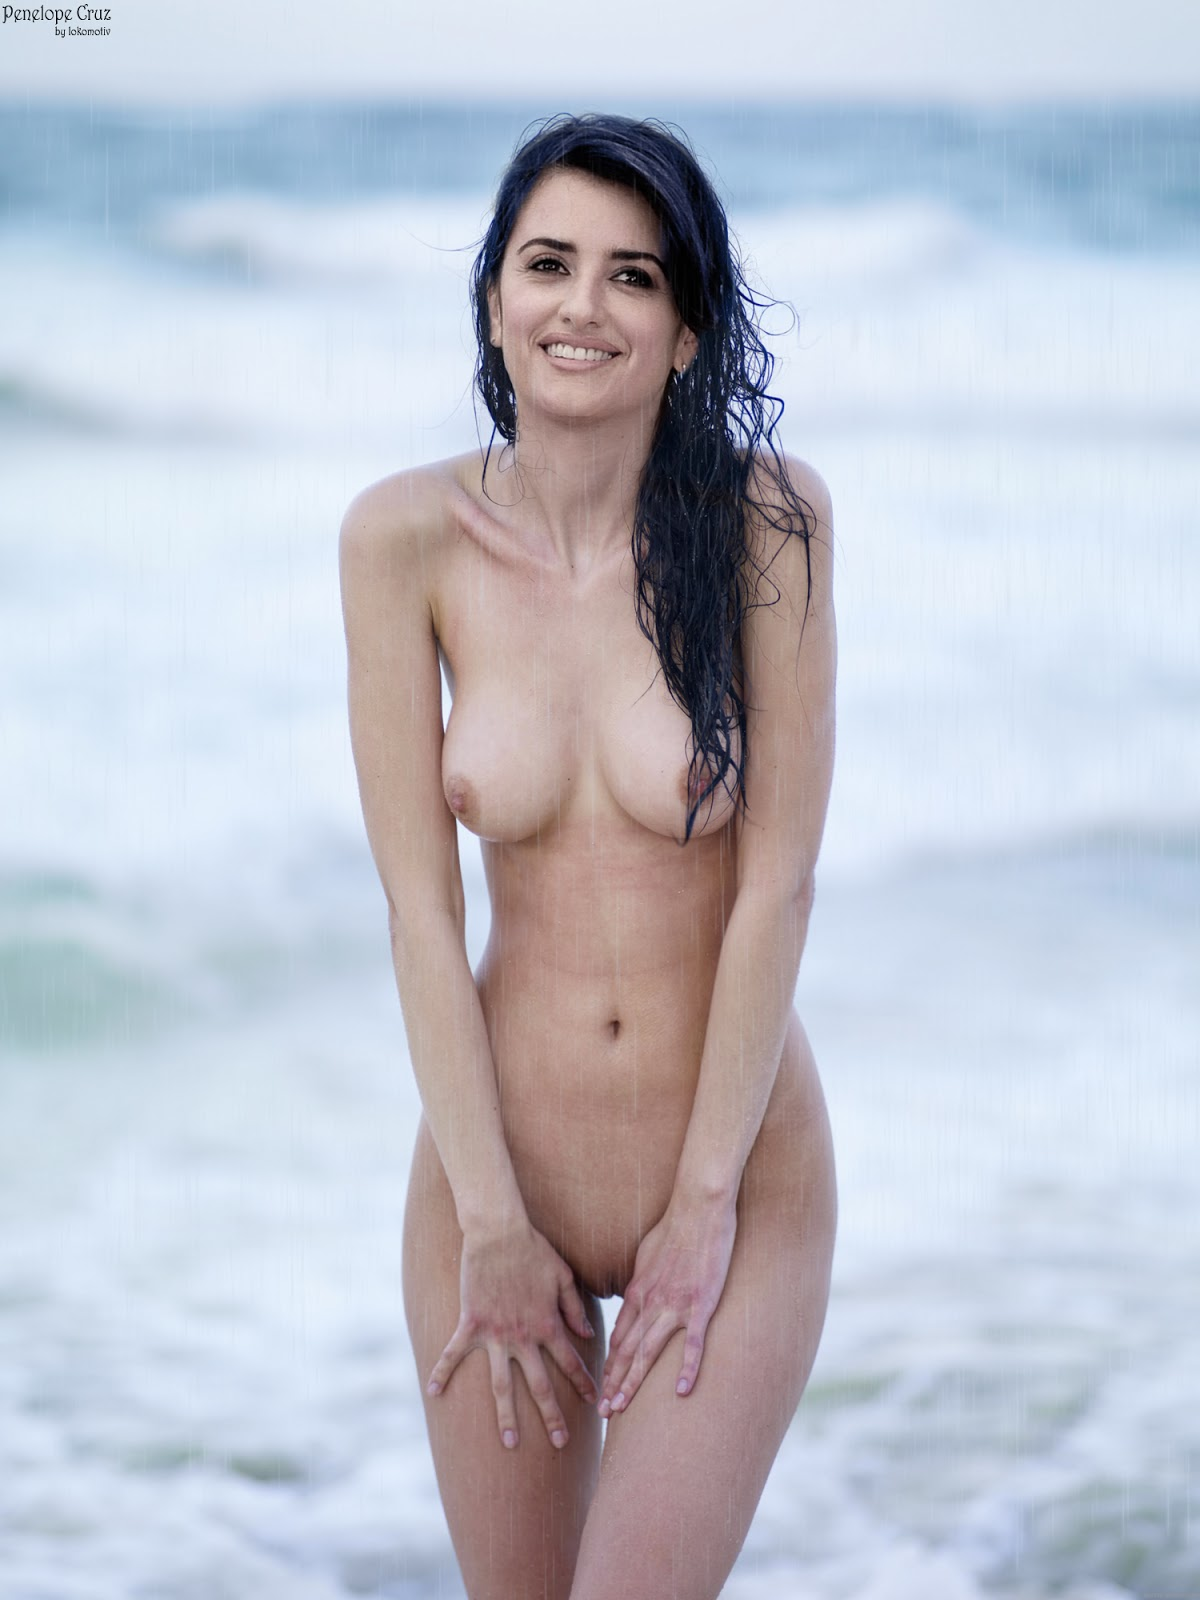 Pity, that penelope cruz nude photo opinion